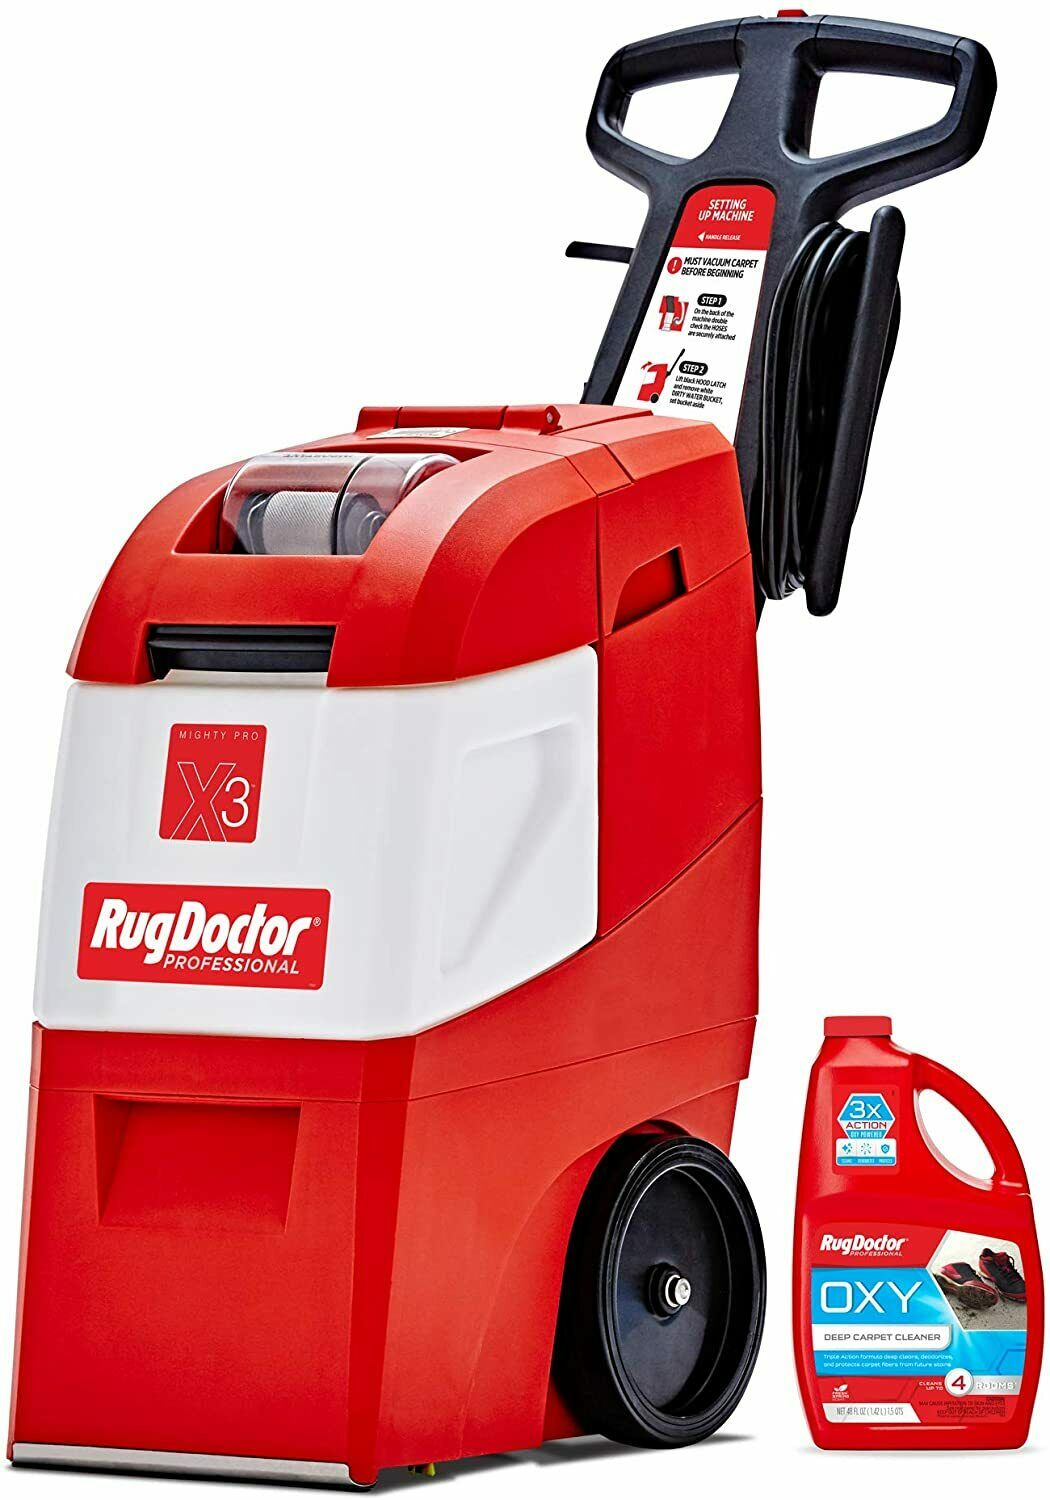 NEW Rug Doctor Mighty X3 Commercial Carpet Cleaner, Large Re